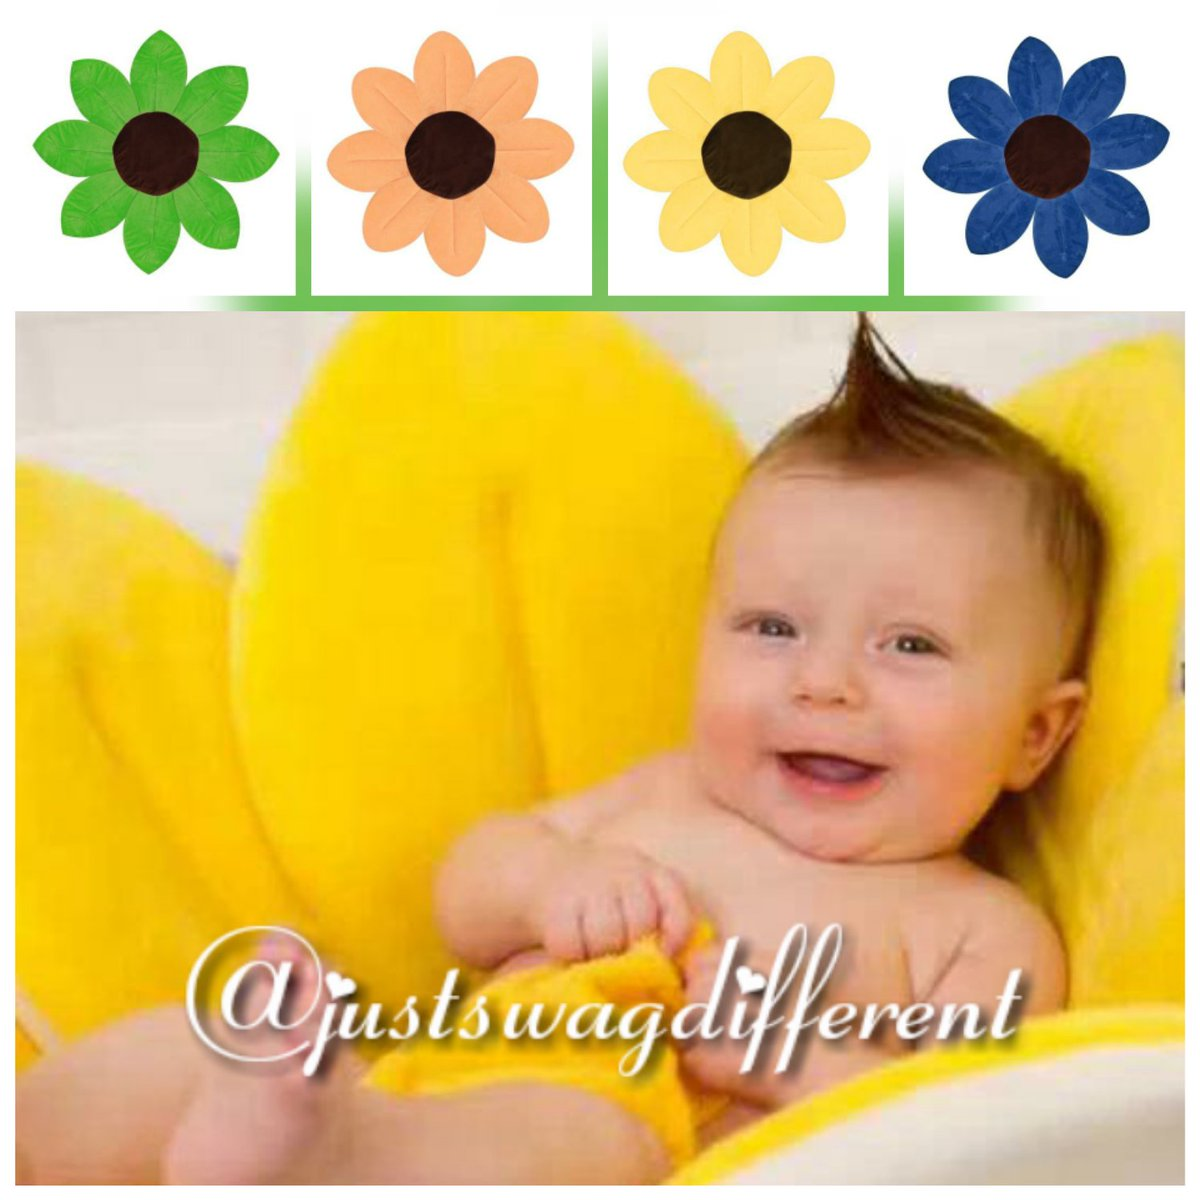 Baby Sink Bath   Foldable Blooming Soft Flower Cushion...  Http://justswagdifferent.com #bath #baby #momlife #momgoals #dadlife #swag  #parenting #unique ...